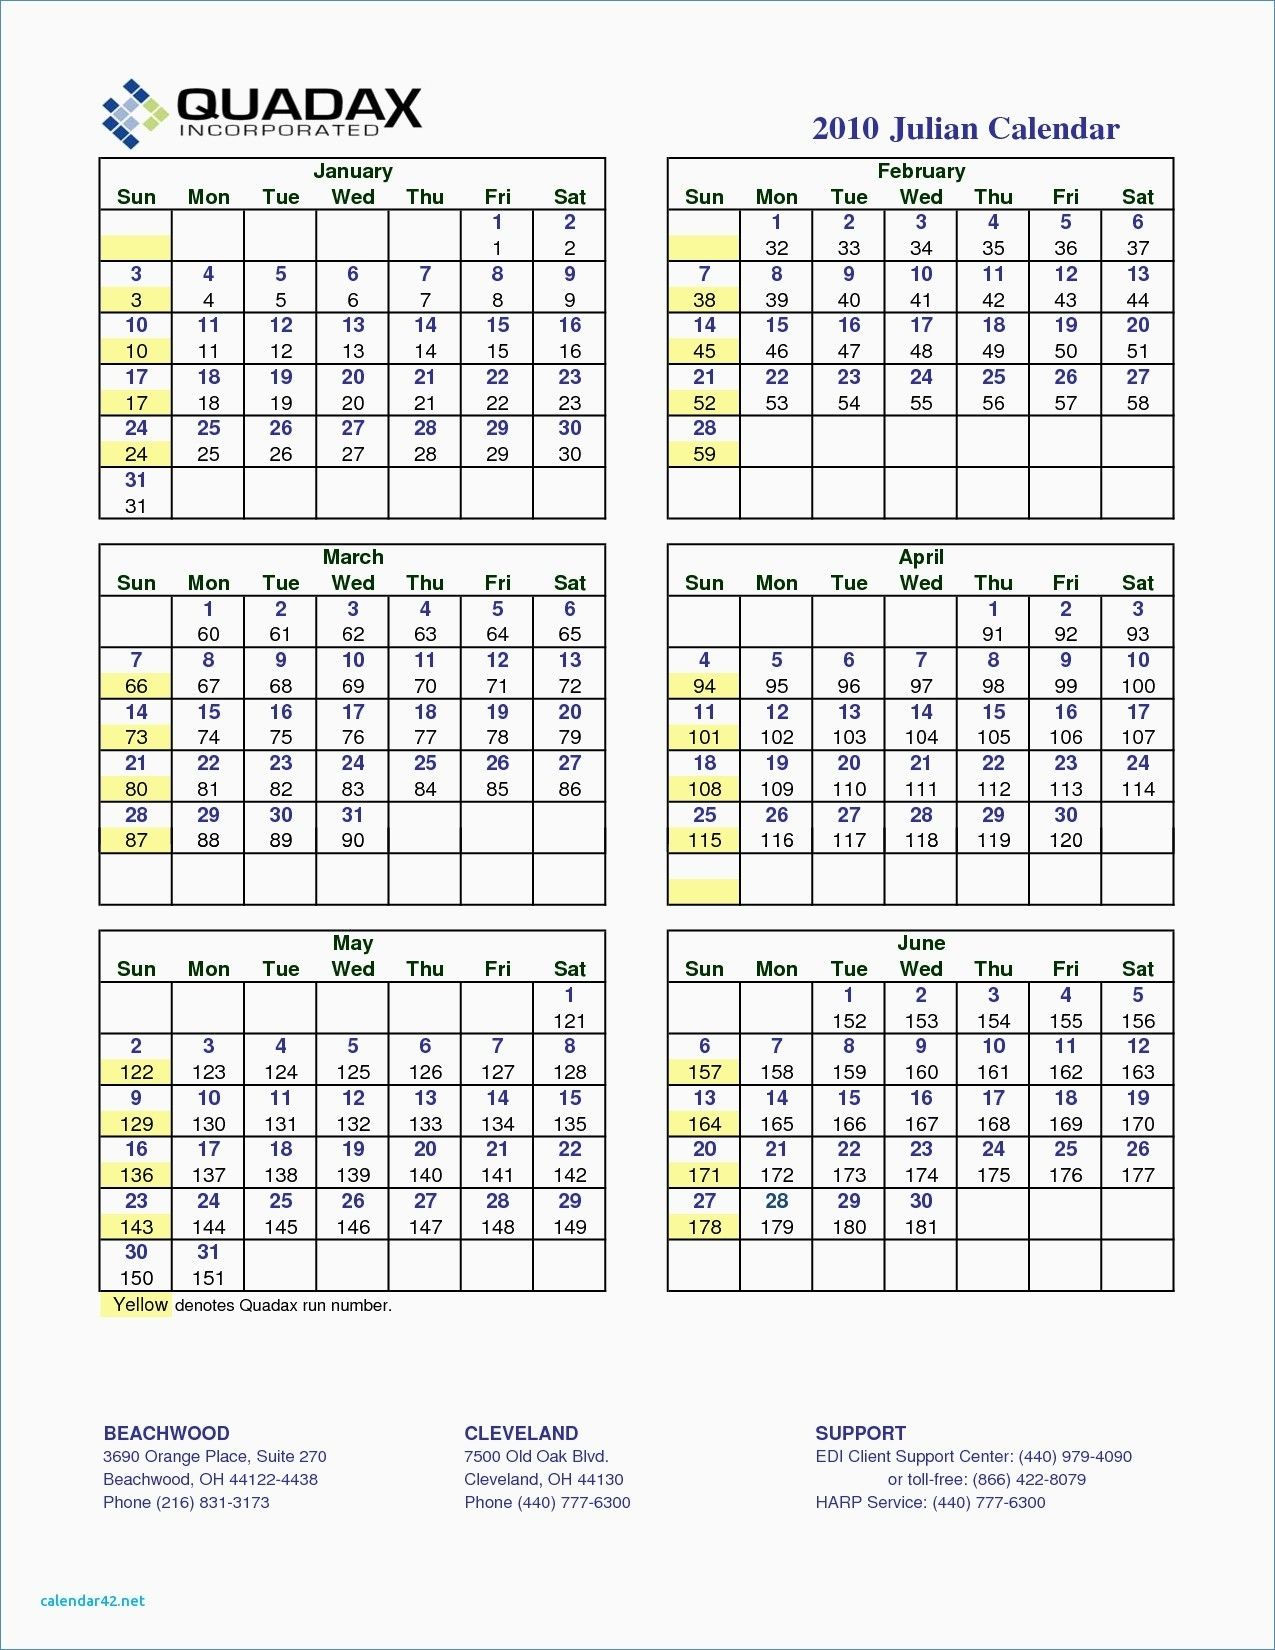 Julian Calendar 2019 Quadax July 2018 Calendar Sri Lanka for Printable Julian Date Calendar